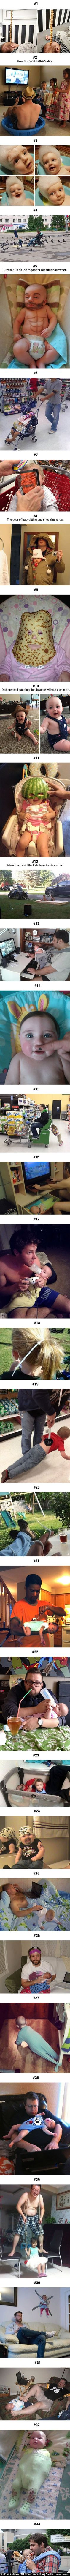 33 Dads Show Off Their Parenting Skills. http://ibeebz.com